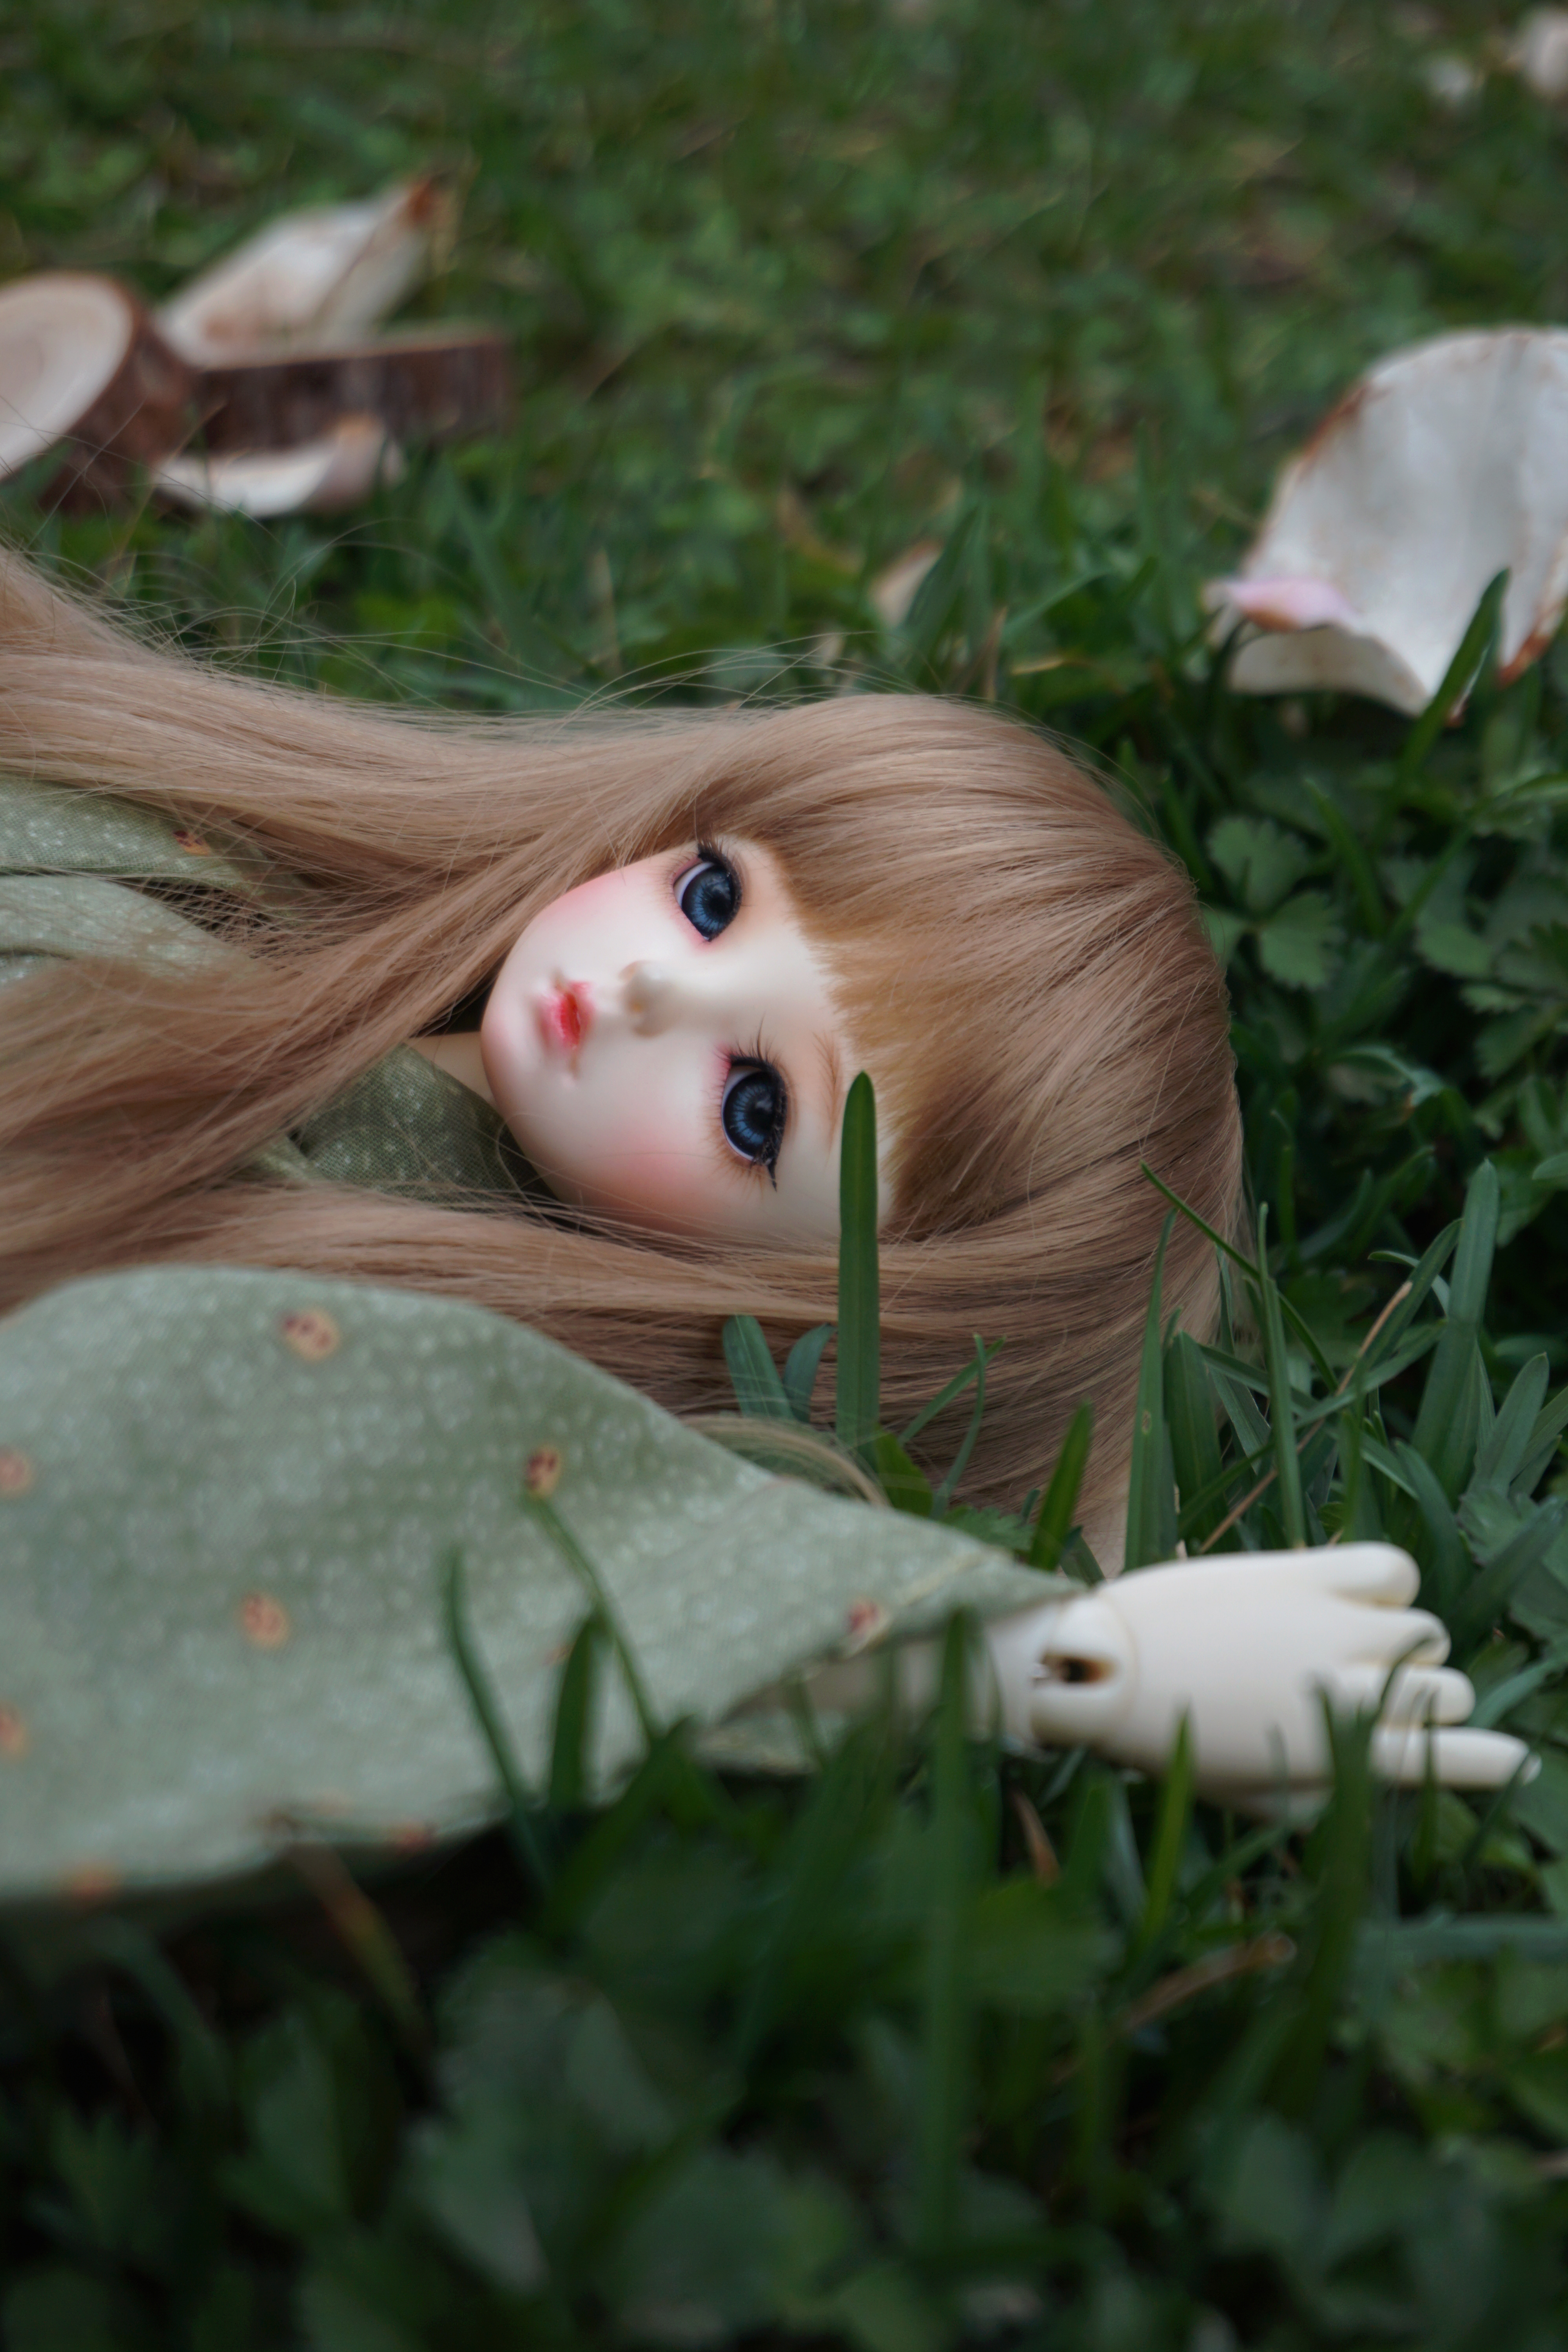 Female Doll In Green Dress Laying On Grass Field 11  C2 B7 Collect  C2 B7 Download